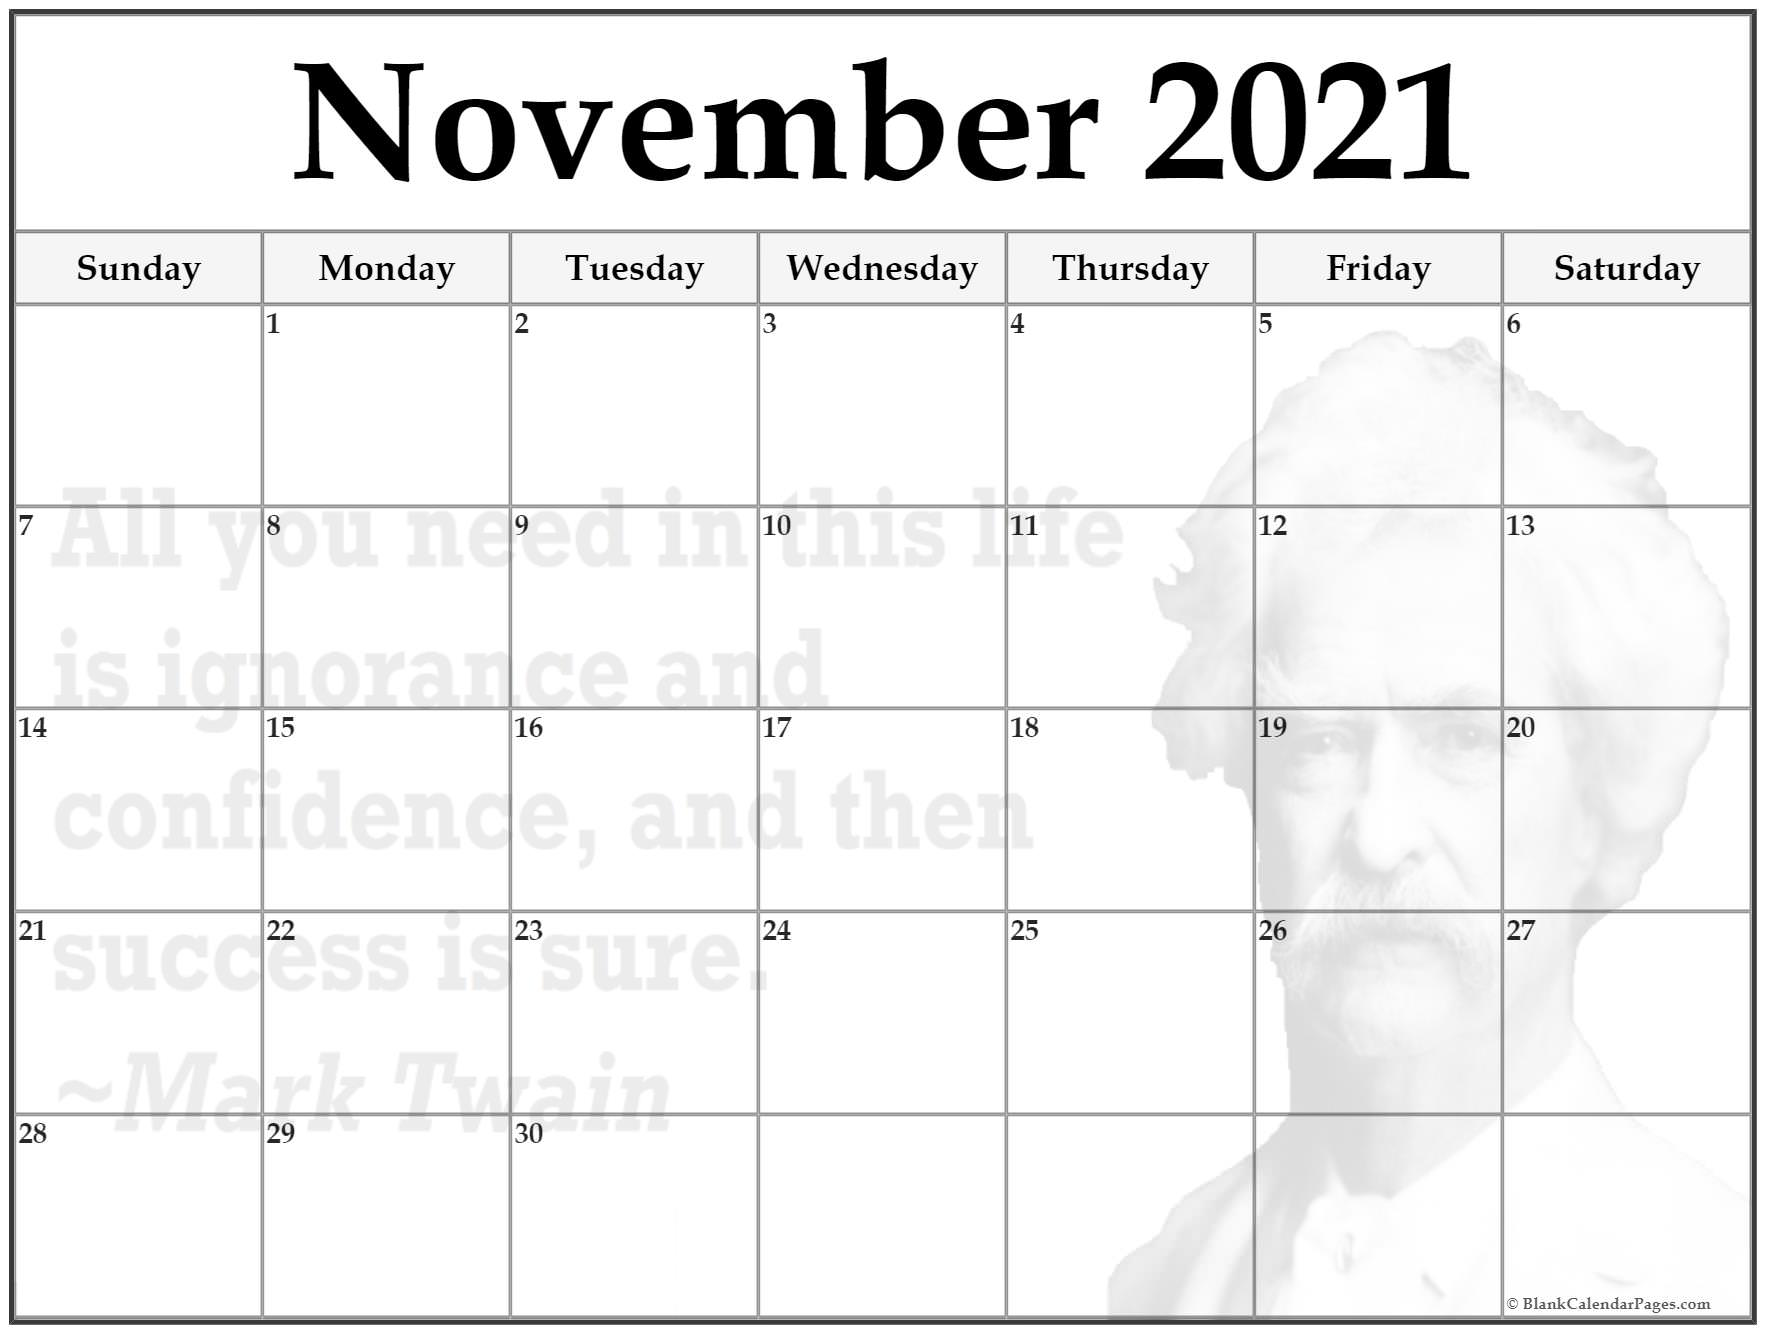 November 2021 with twain quotes. All you need in this life is ignorance and confidence, and then success is sure. ~Mark Twain